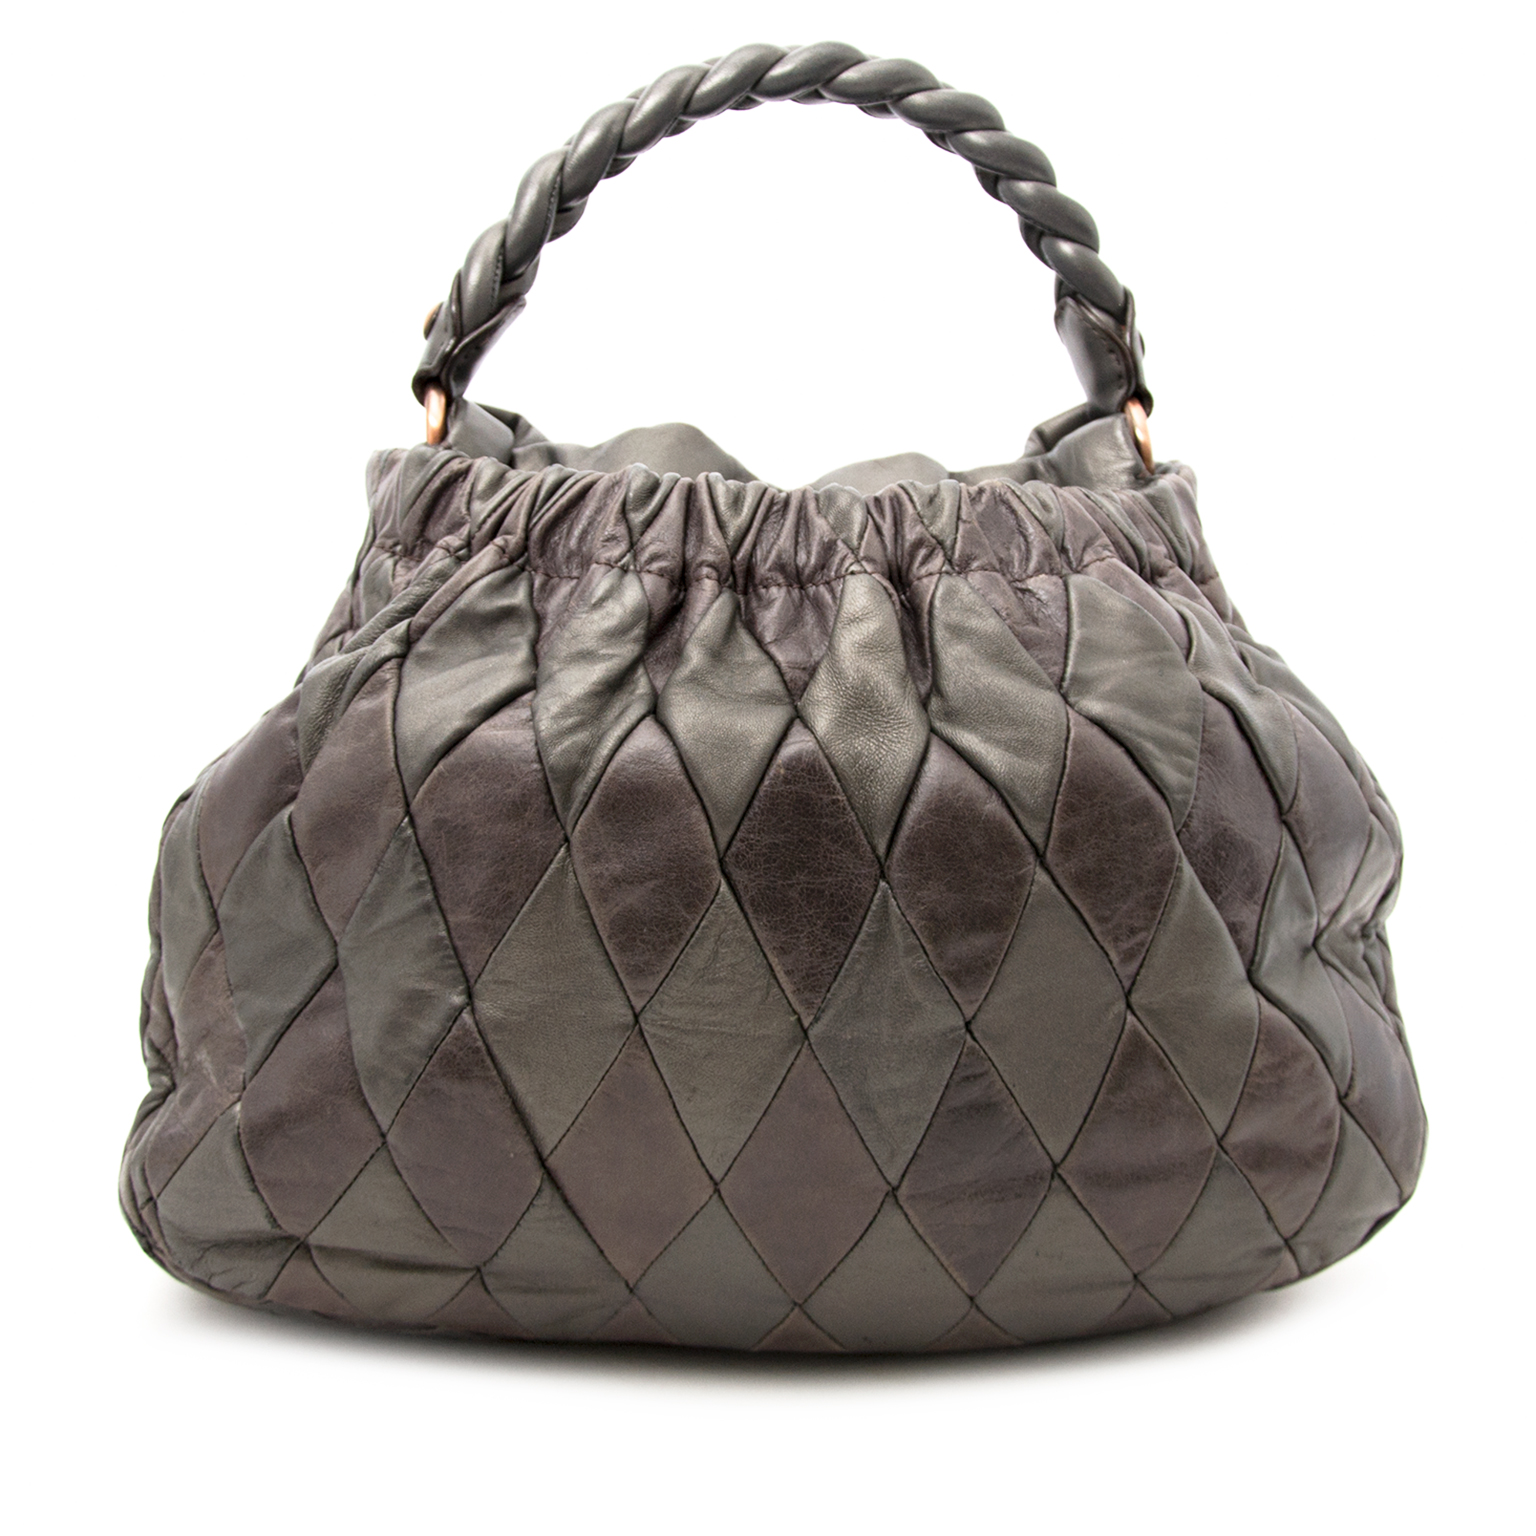 We buy and sell your seondhand Miu Miu Grey Leather Handbag for the best price online.